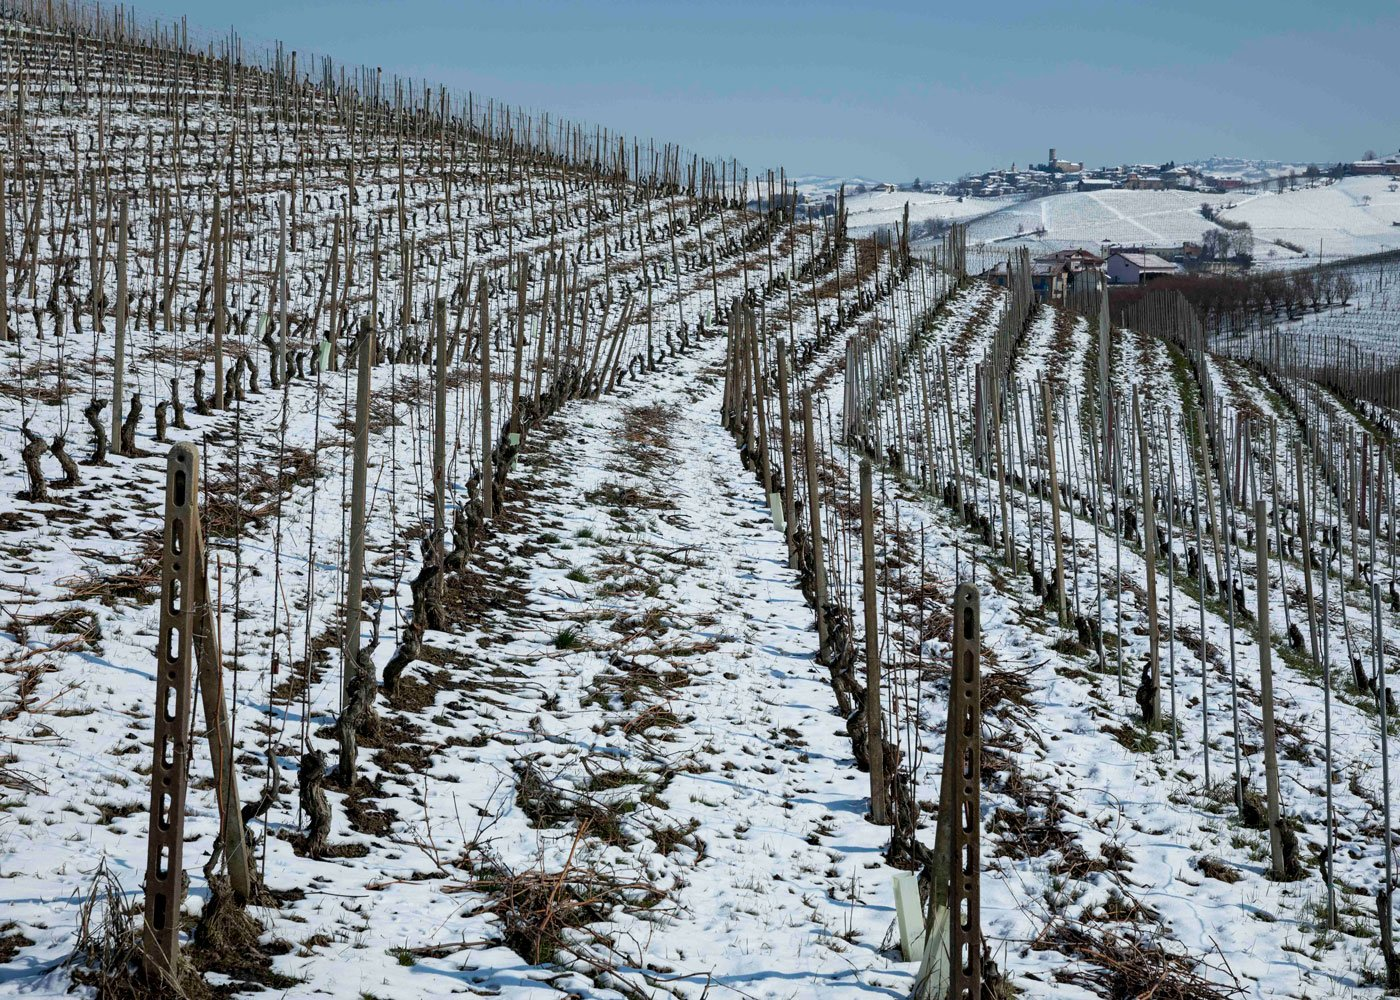 The Nebbiolo vineyards in winter: Sarmassa